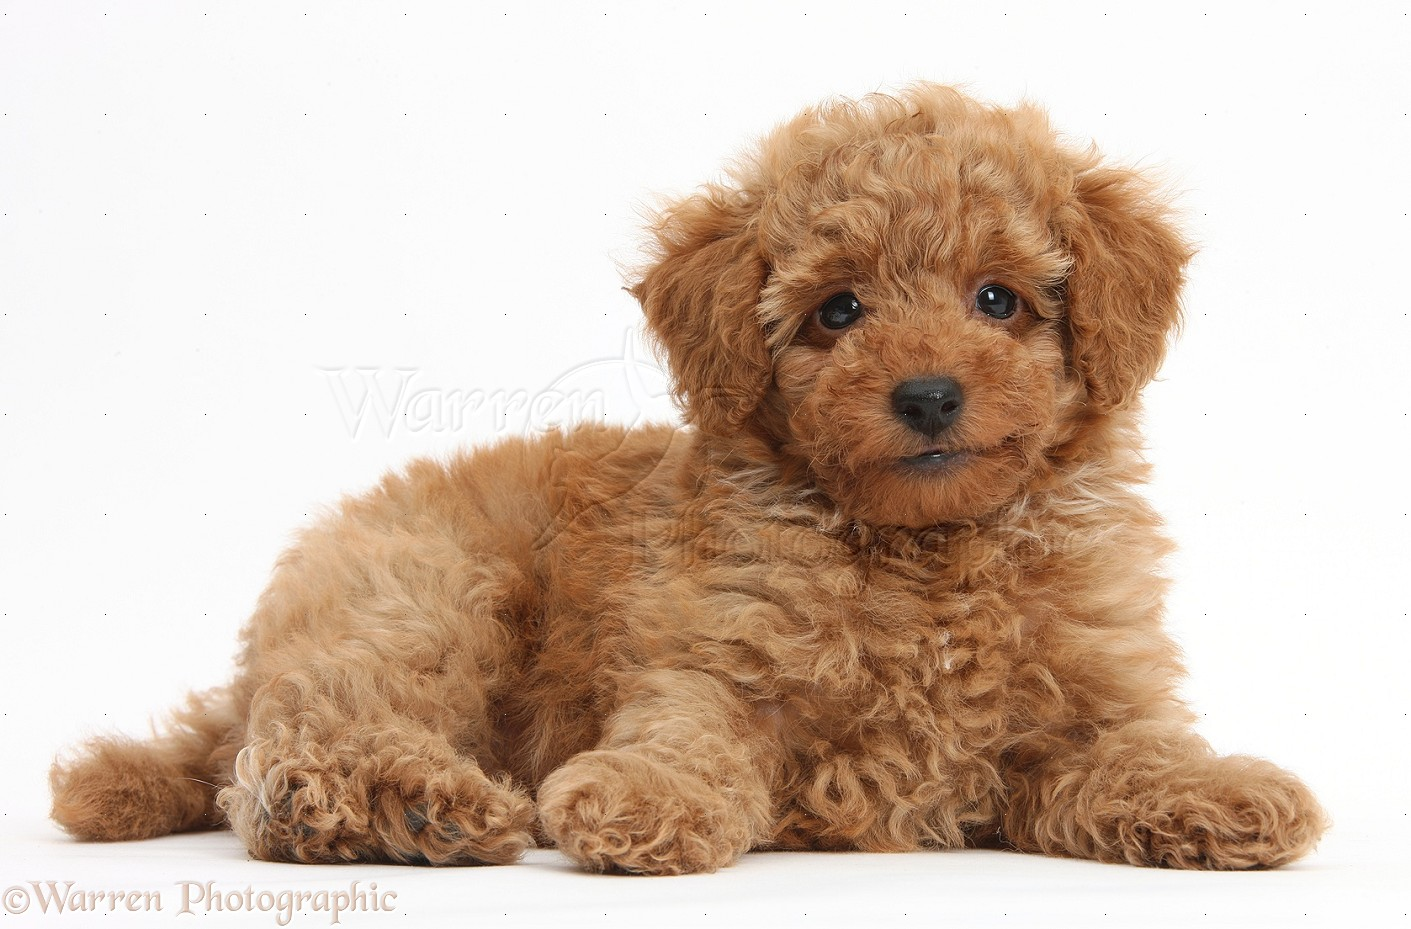 Dog Cute Red Toy Poodle Puppy Photo Wp38746